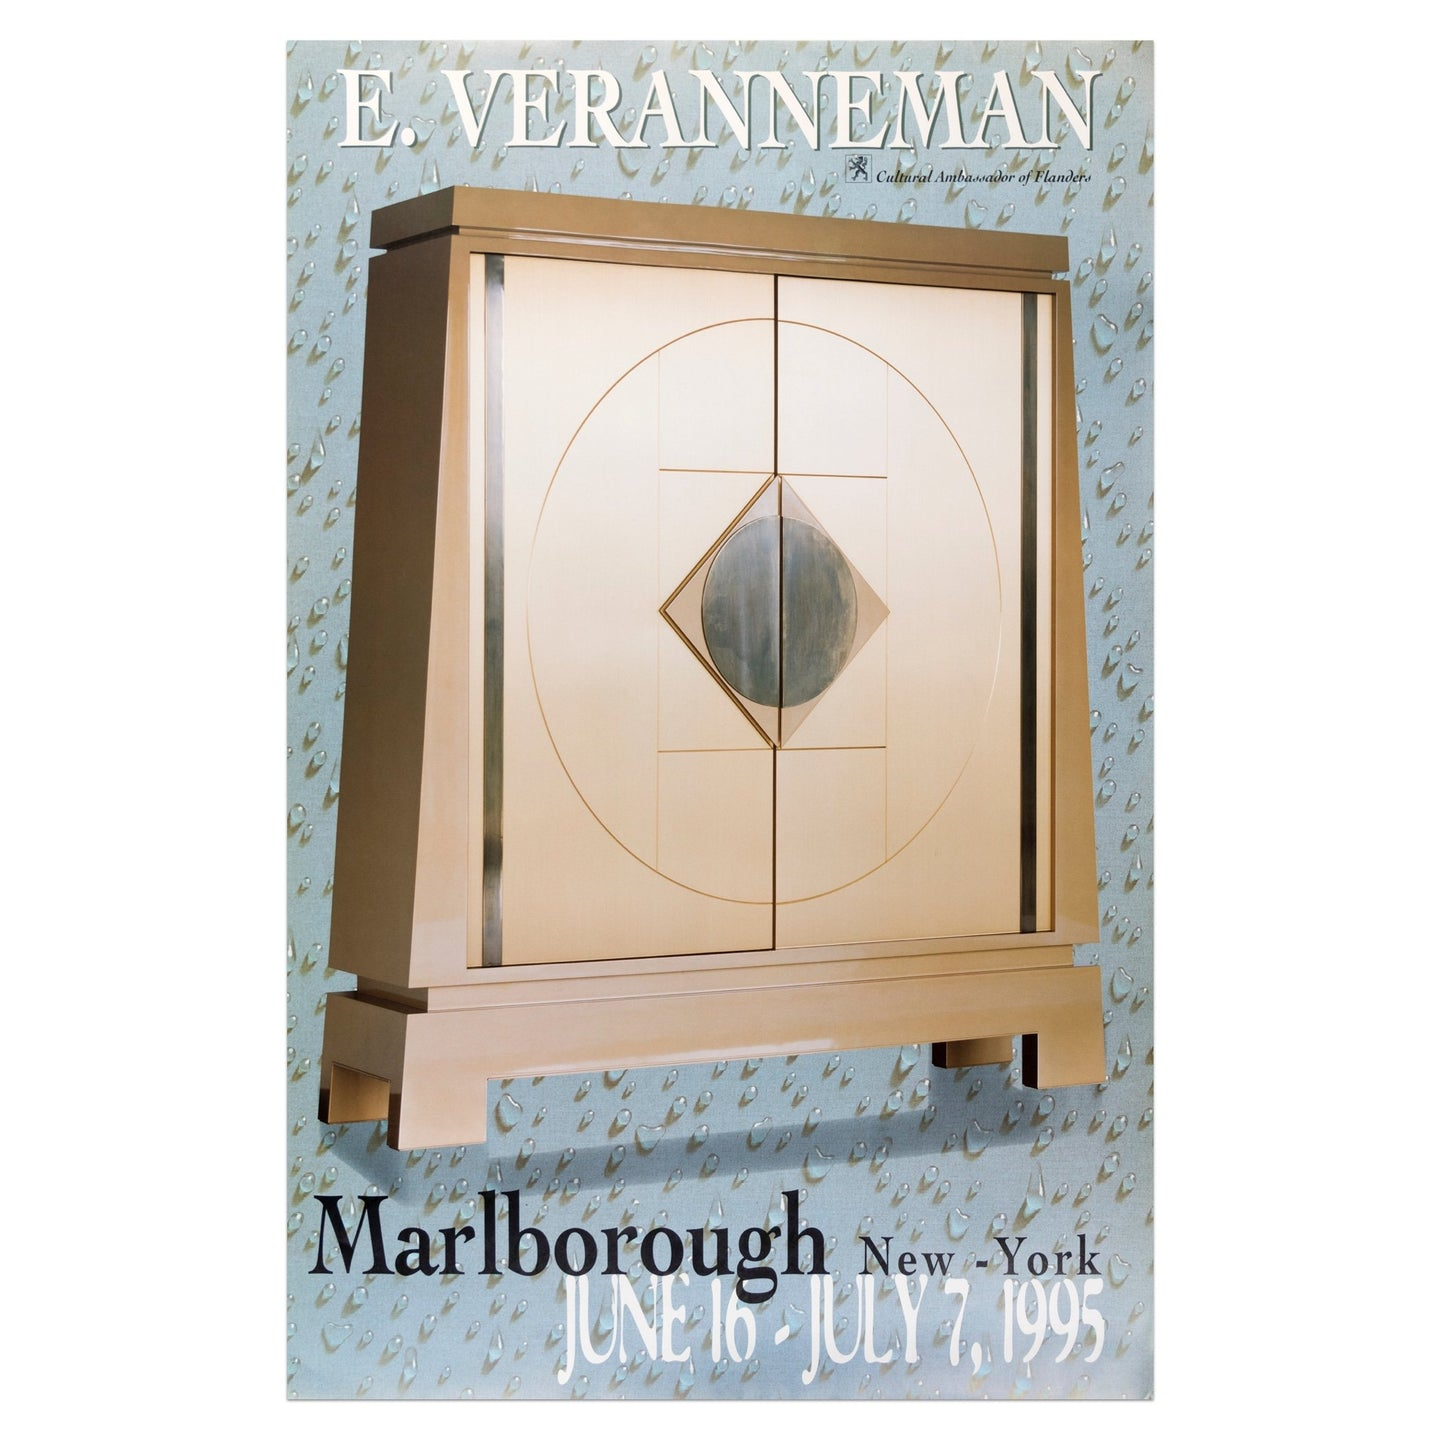 1996 Marlborough New York poster for Emiel Veranneman featuring a gold cabinet chest with detailing of a circle and square